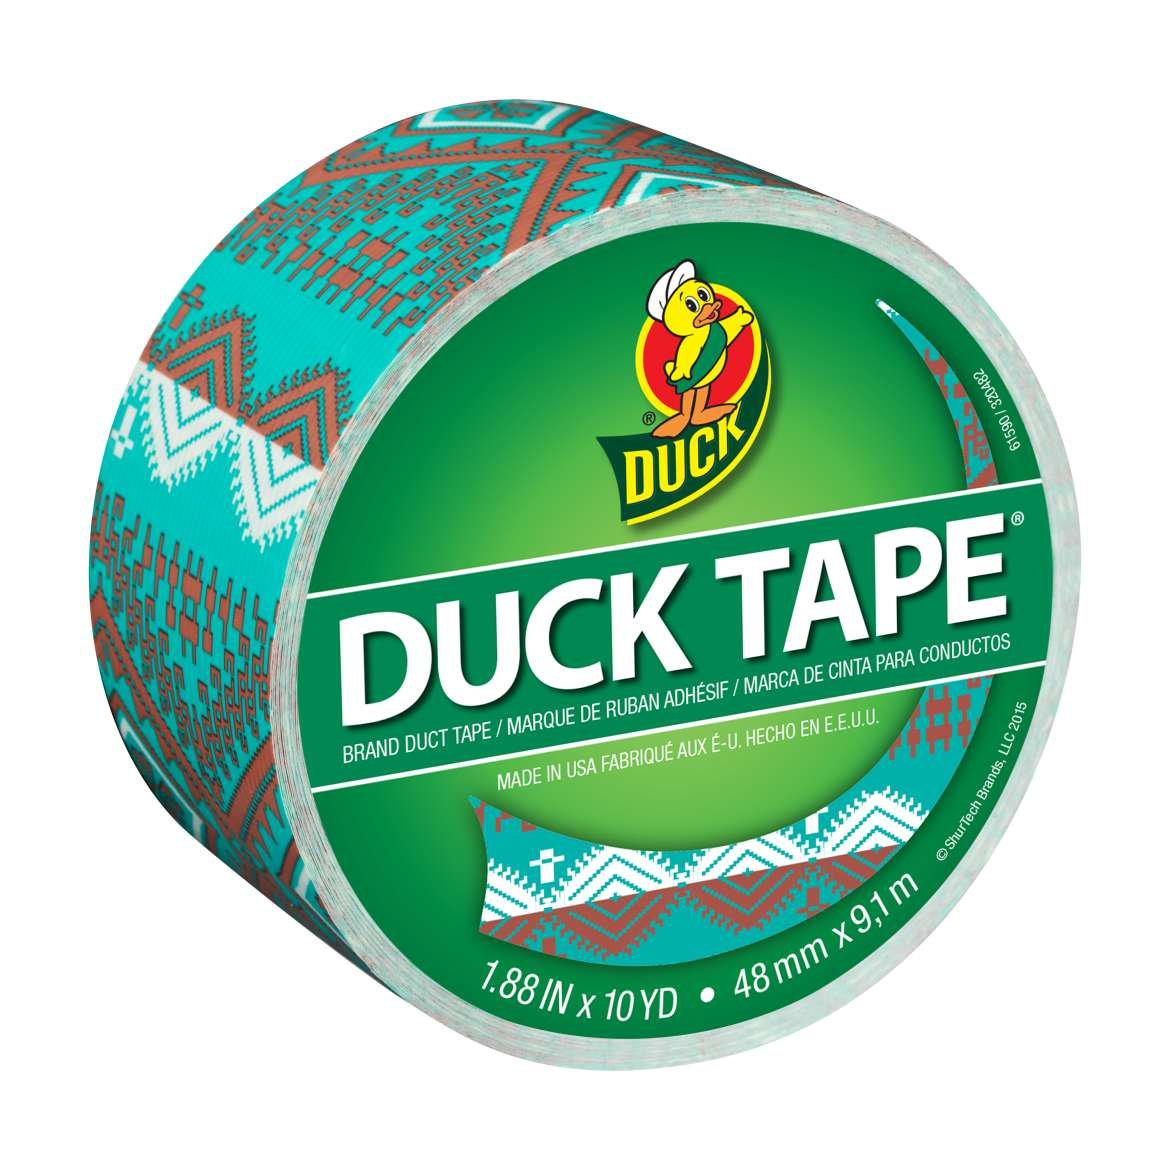 Printed Duck Tape® Brand Duct Tape - Desert Stars, 1.88 in. x 10 yd. Image